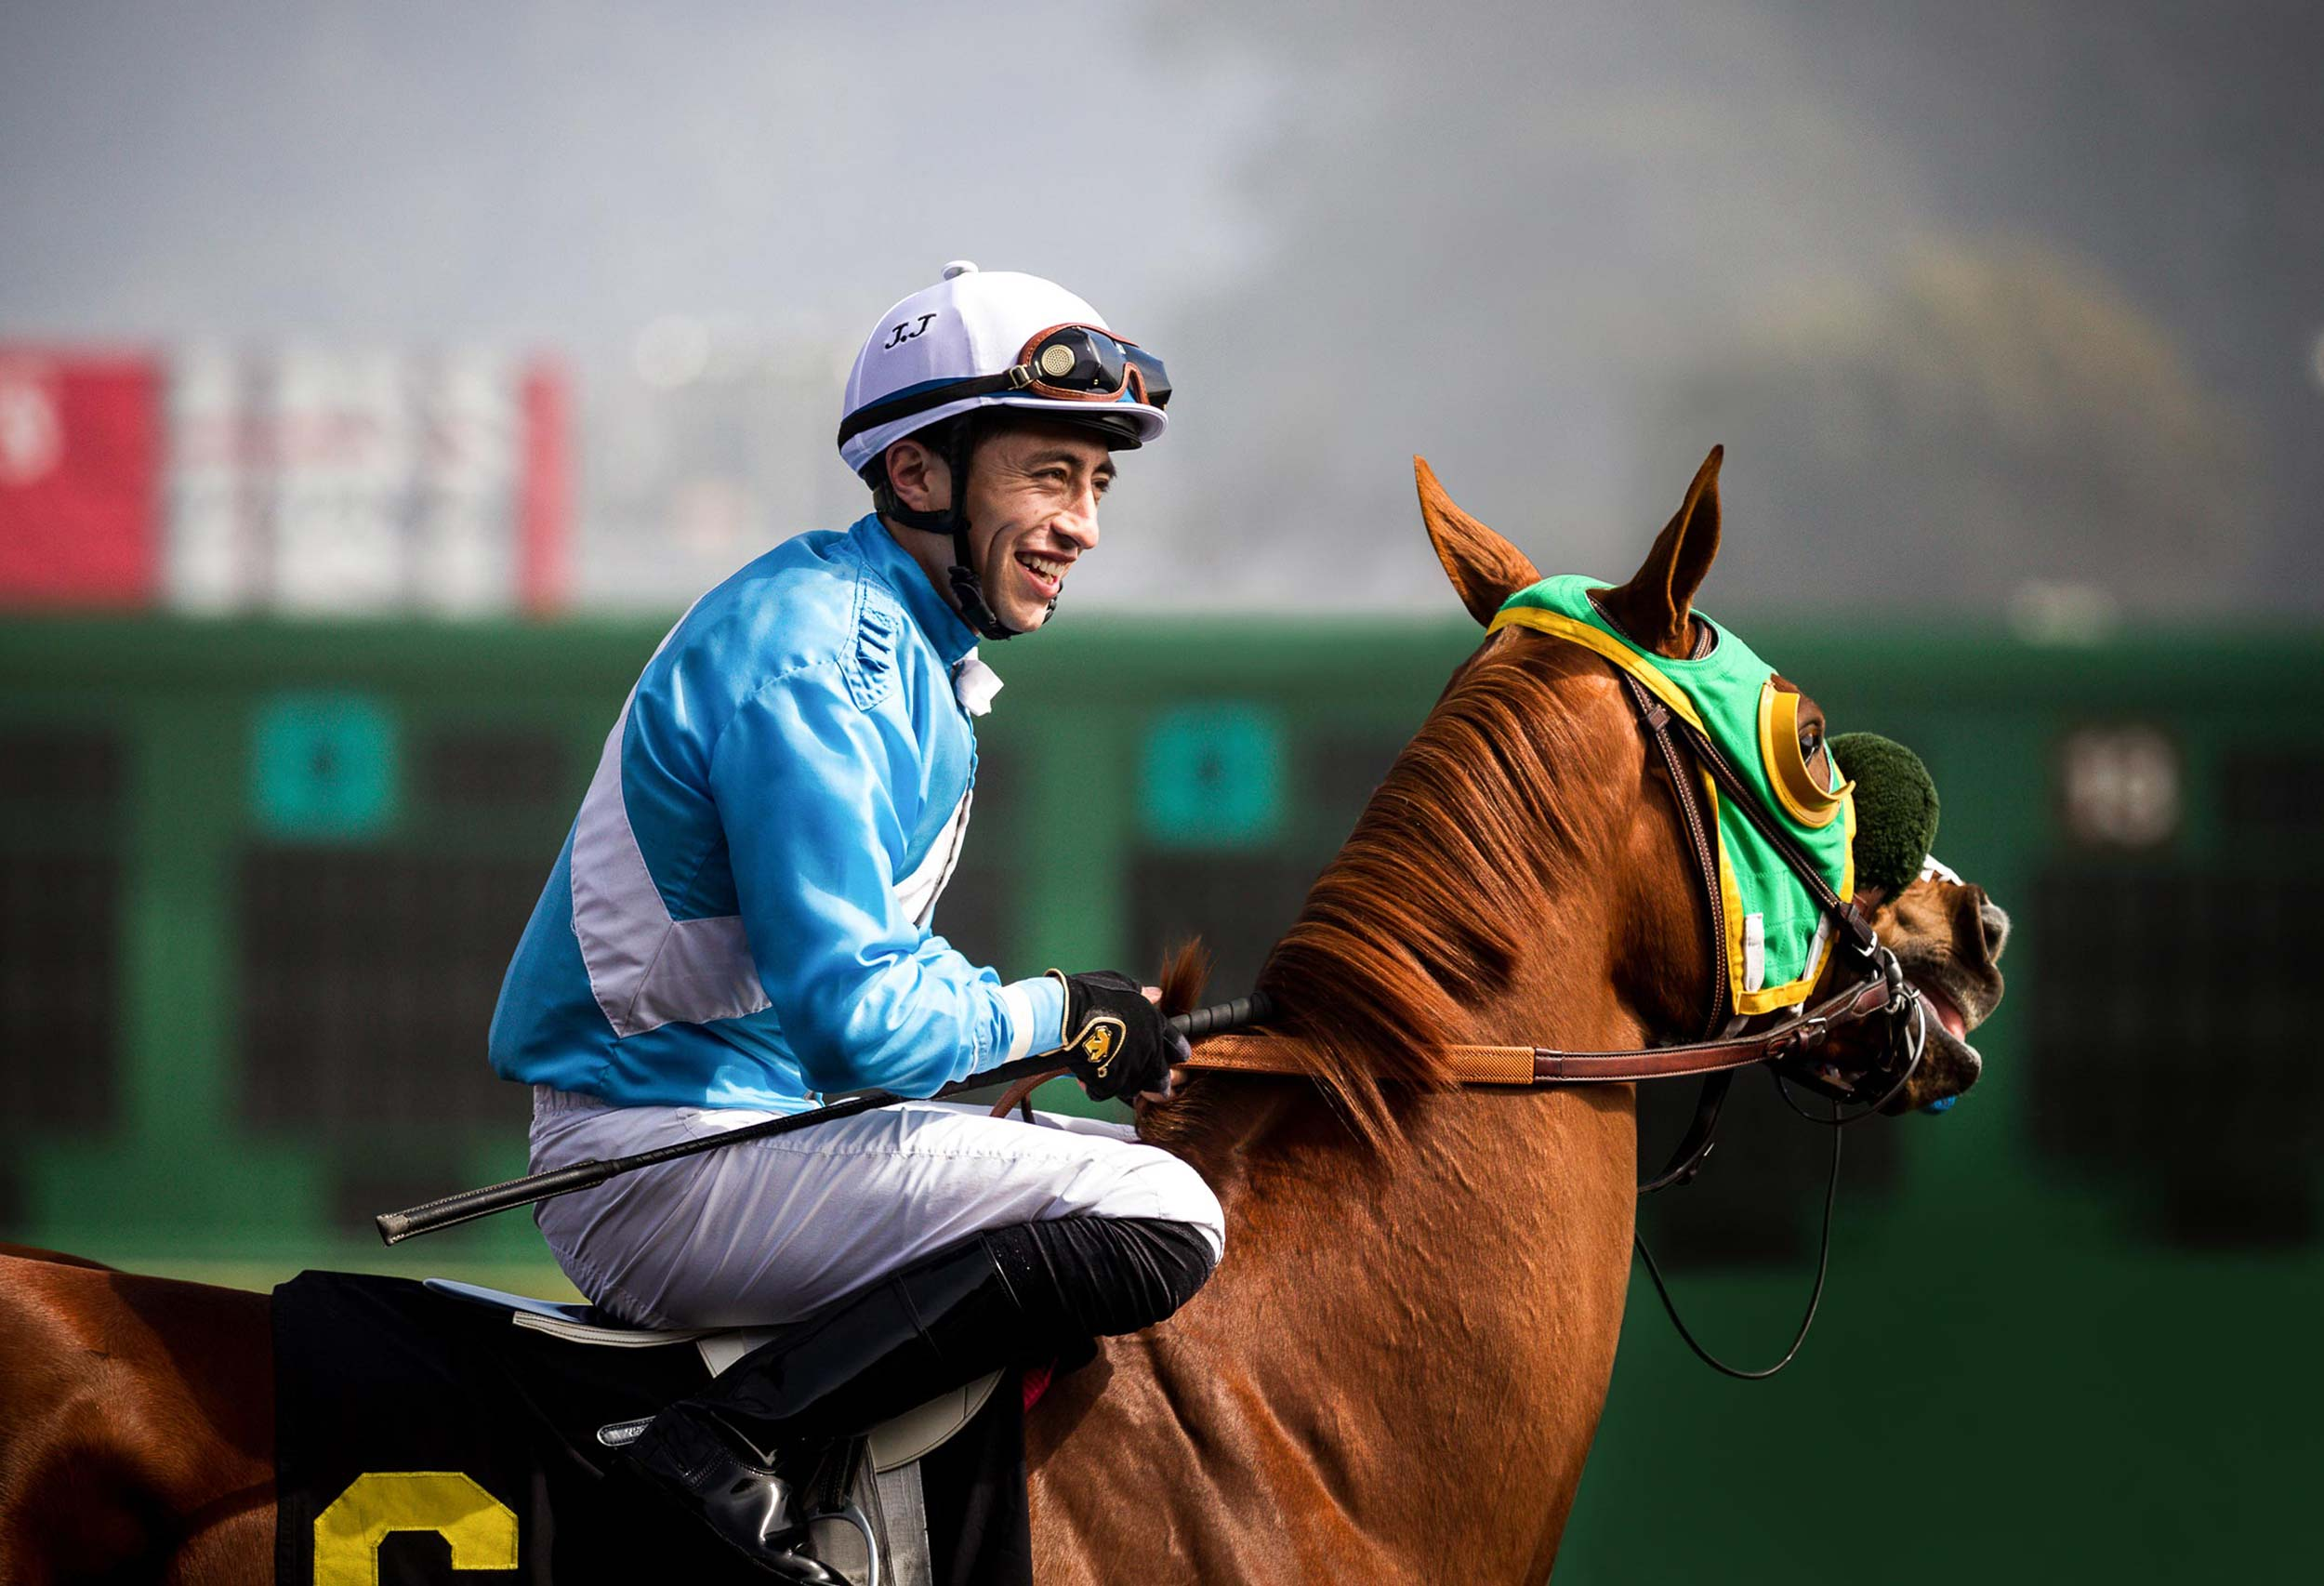 Jockey_JMichaelTuckerPhotography.jpg